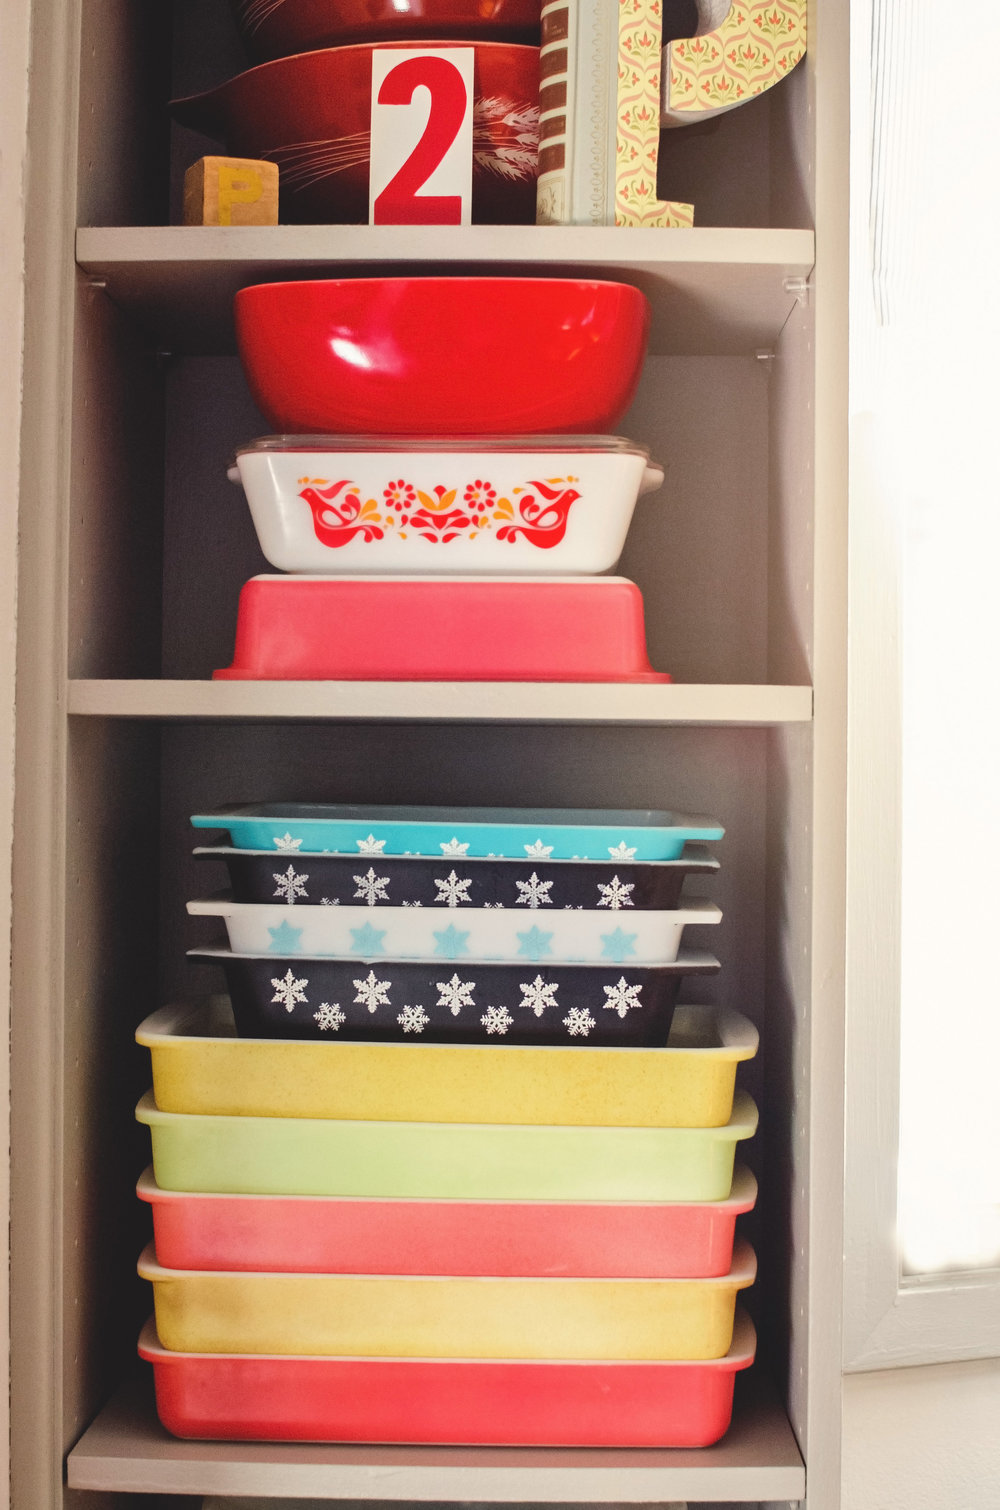 Colorful vintage pyrex stacked on shelves. H.Prall & Co. | hprallandco.com